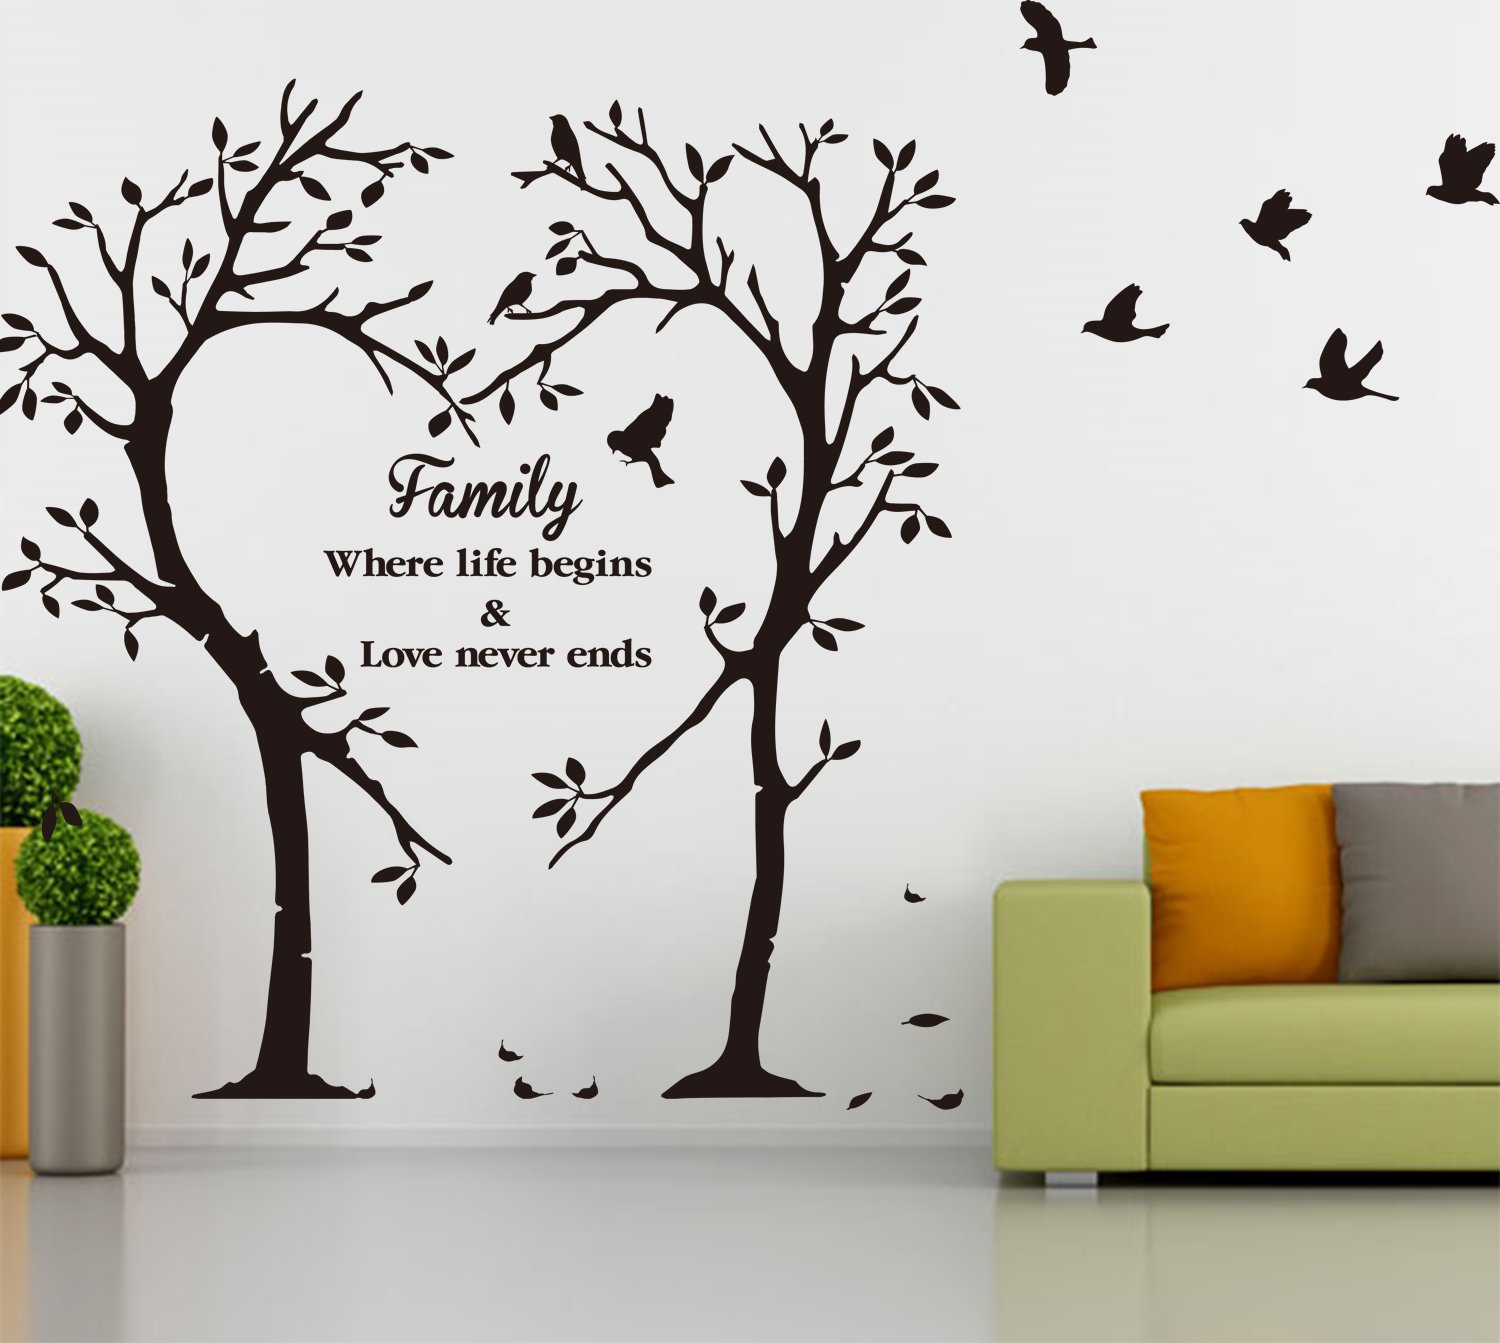 Family inspirational love tree wall art sticker wall sticker family inspirational love tree wall art sticker wall sticker decal medium amipublicfo Image collections